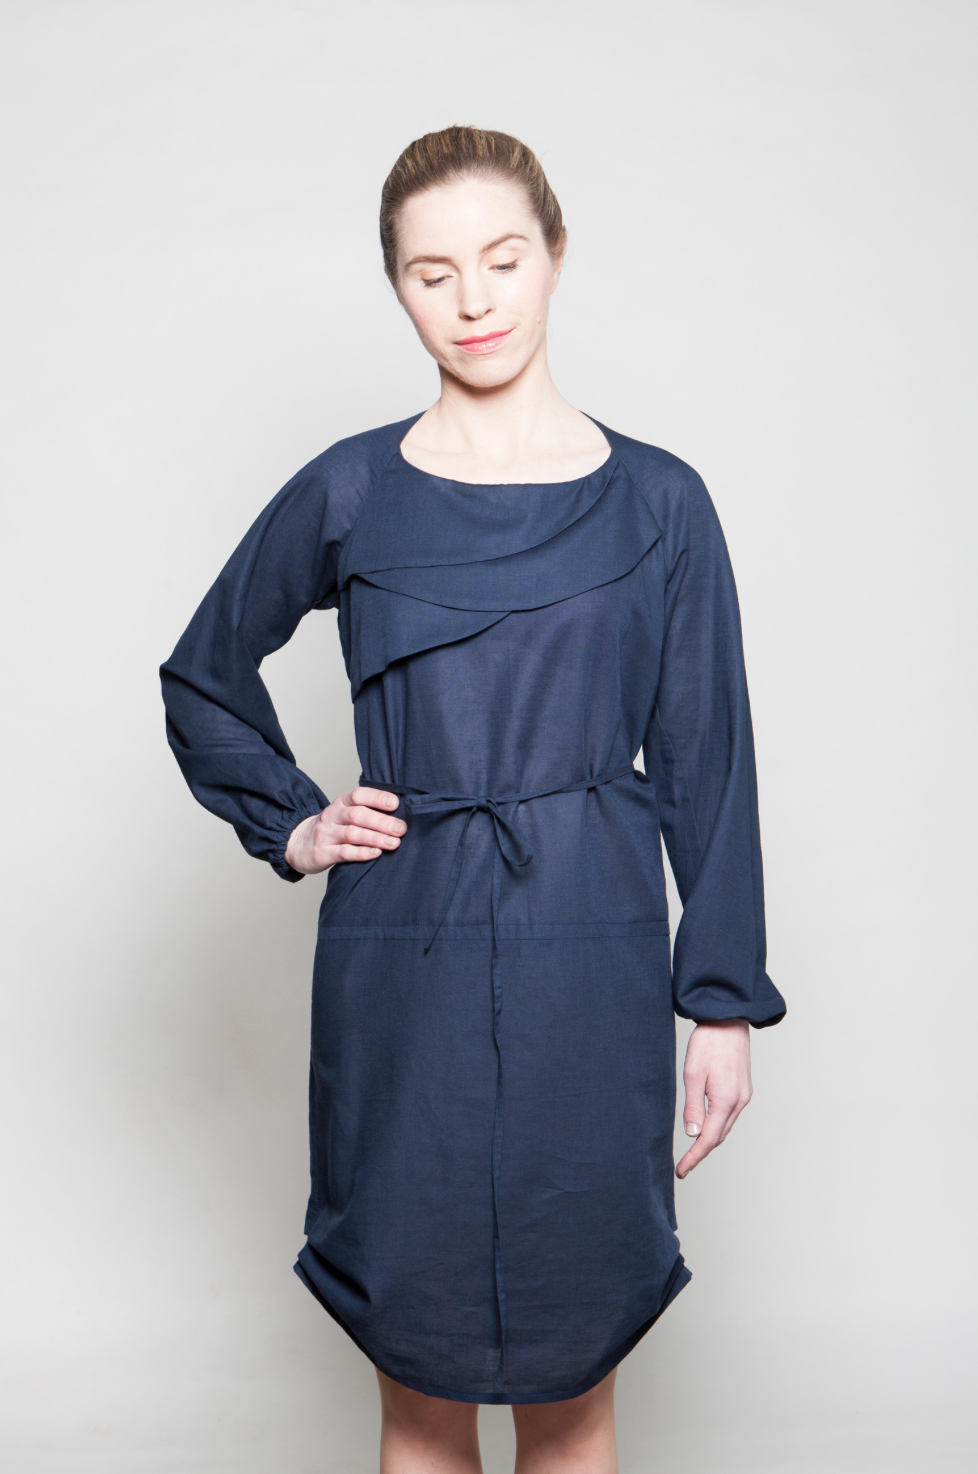 Uni dressUni dress is made of 100% cotton. Long sleeves have elastic on wrists. The dress can be gathered together on hips with thin fabric belt or worn straight down. -